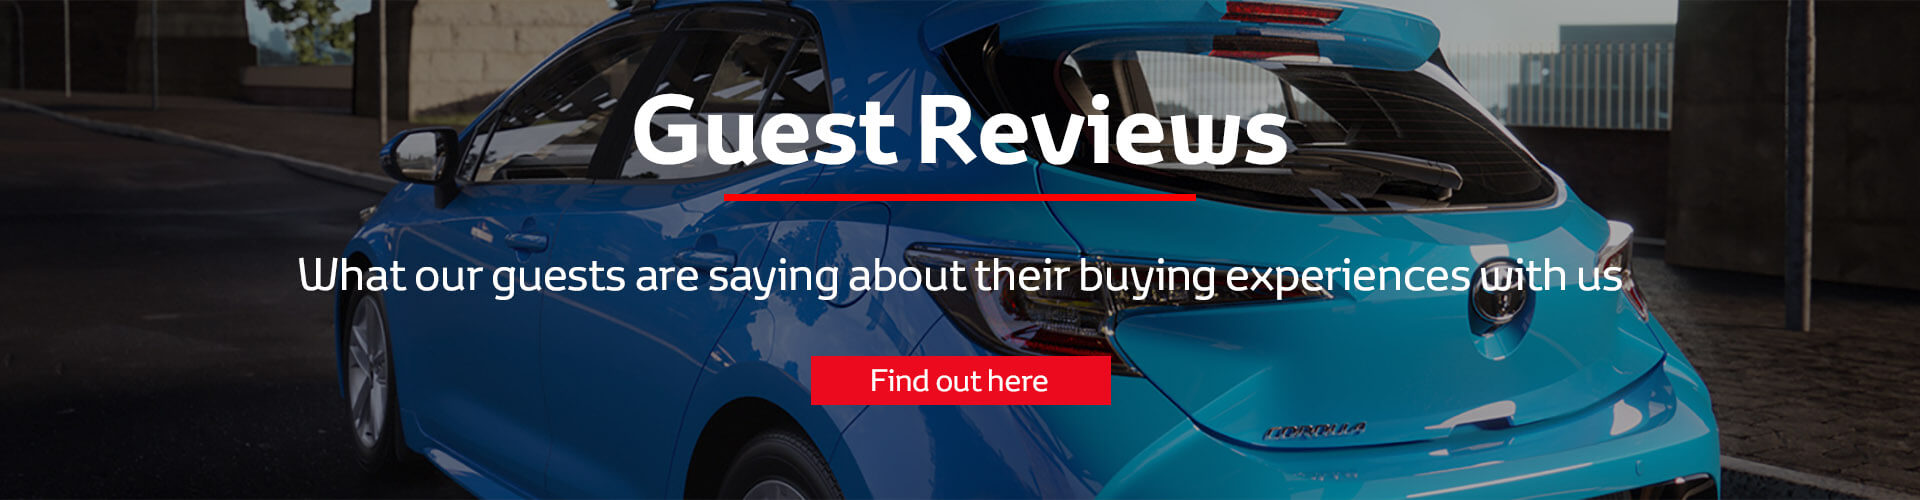 Toyota Guest Reviews